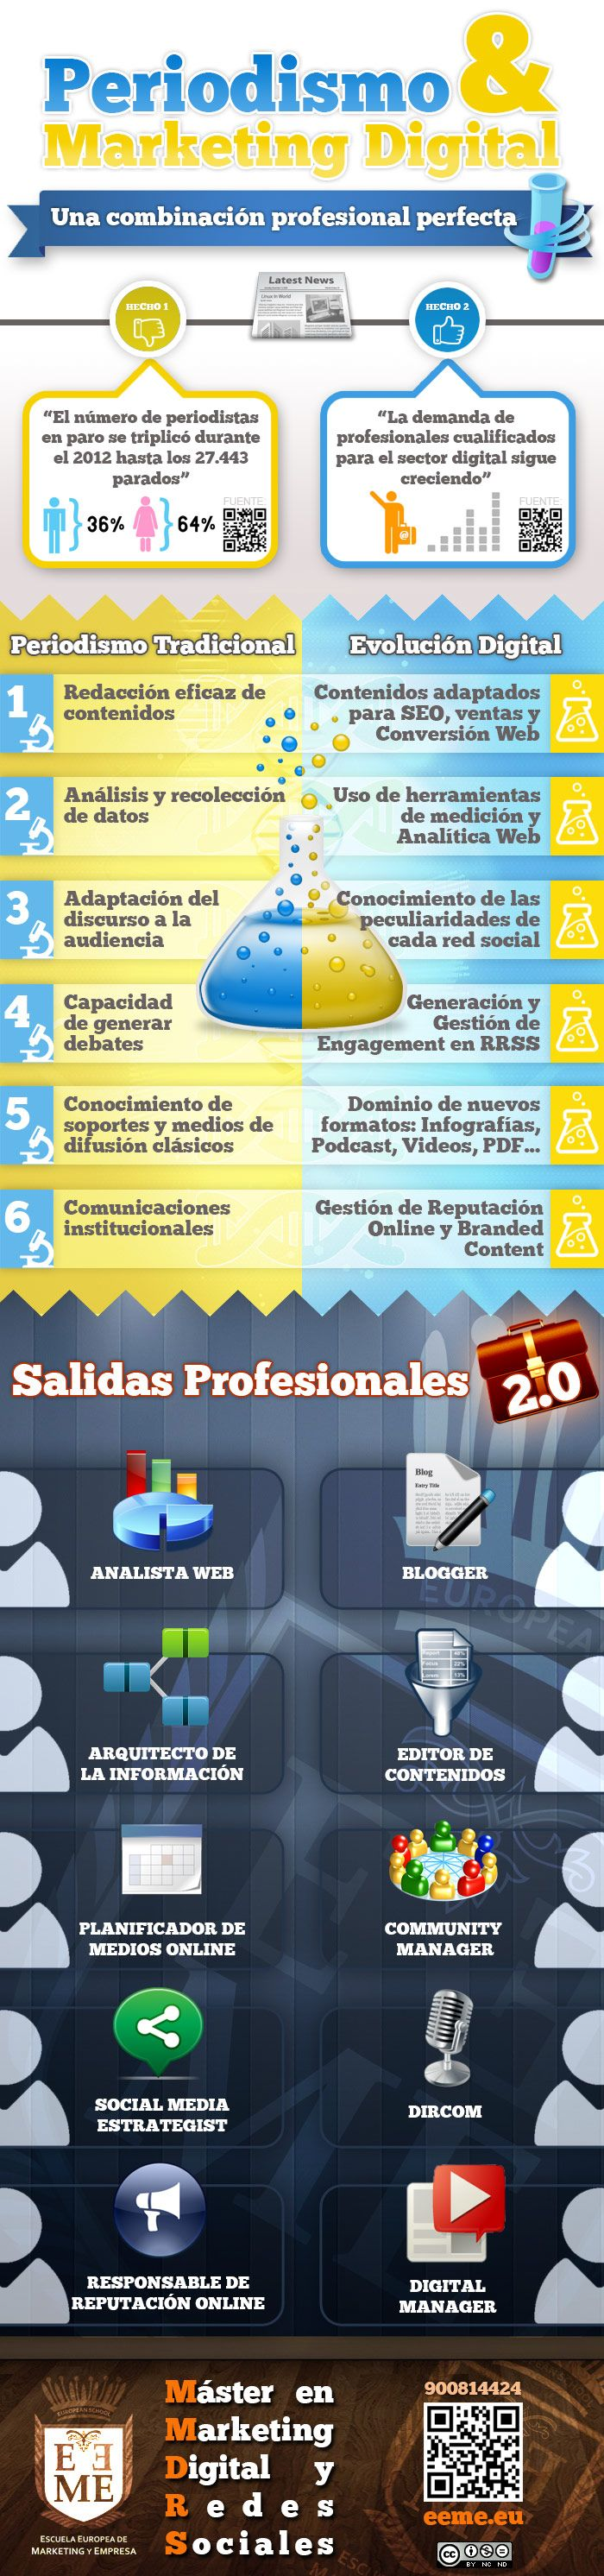 IXOUSART: INFOGRAFÍA: Periodismo y Marketing Digital: Una combinación perfecta